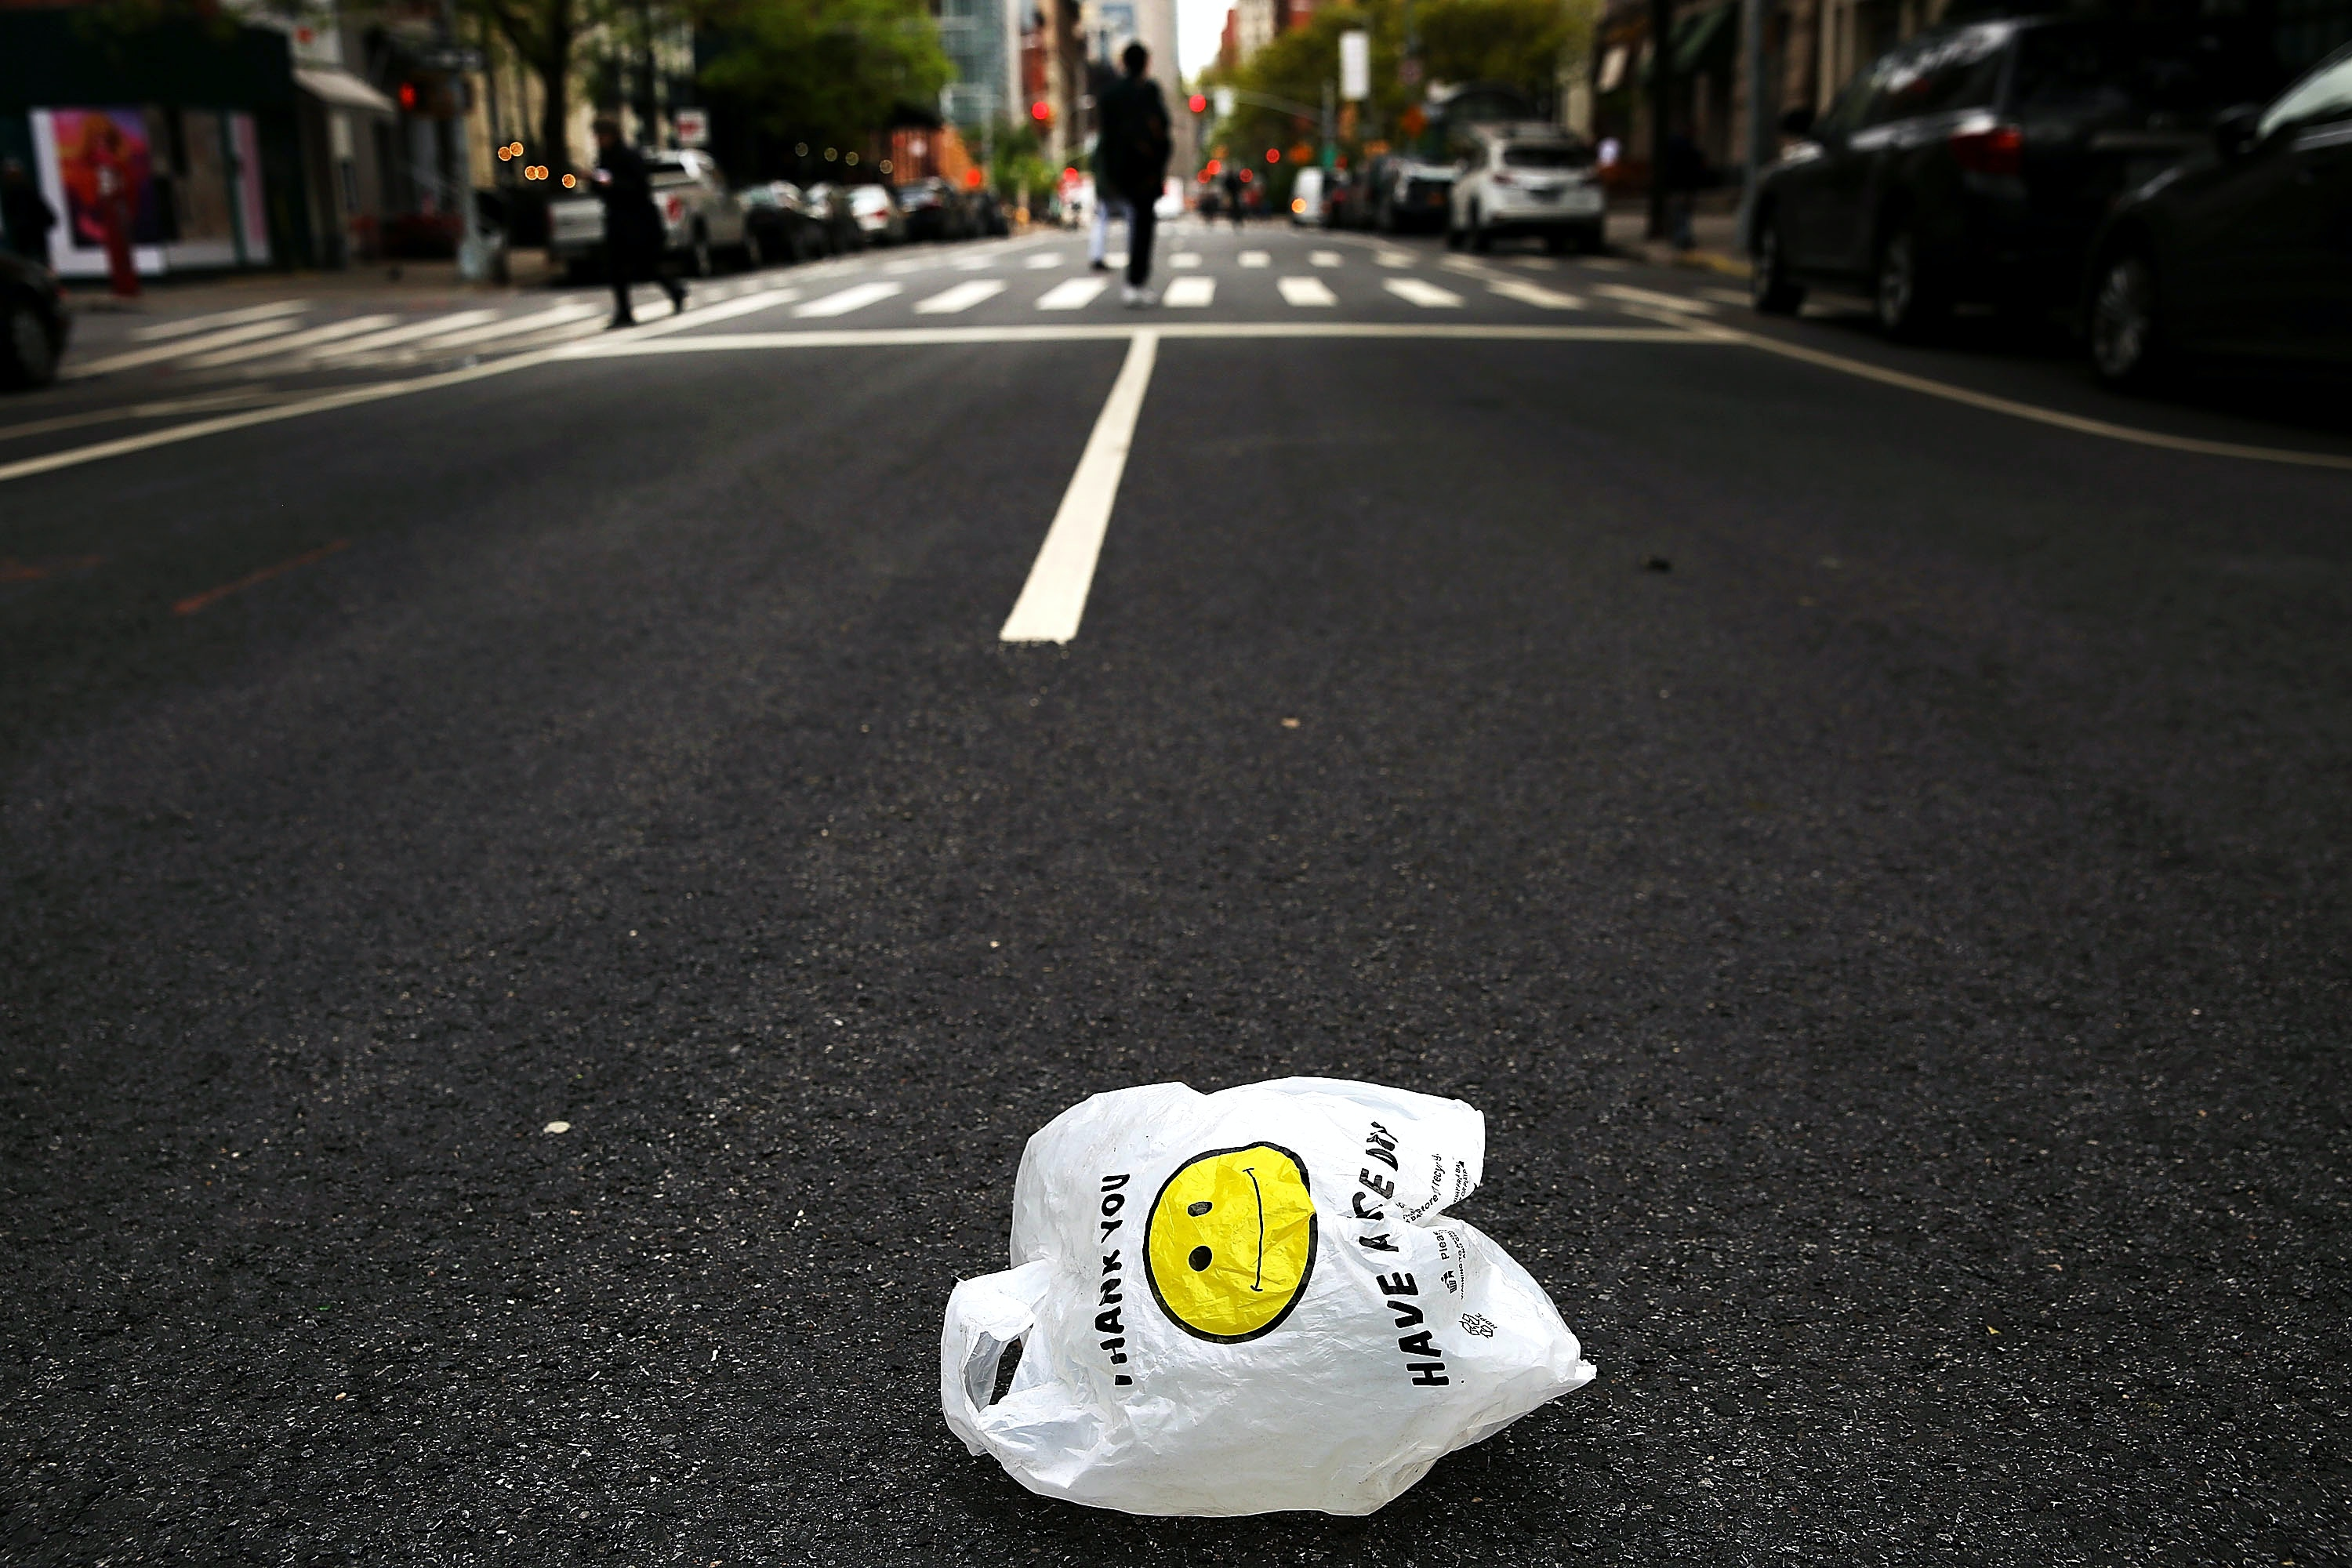 NEW YORK, NY - MAY 05: A plastic bag sits in a Manhattan street on May 05, 2016 in New York City.New York's City Council is scheduled to vote Thursday on a bill that would require most stores to charge five cents per bag in an effort to cut down on plastic waste. New York's sanitation department estimates that every year 10 billion bags are thrown in the trash. (Photo by Spencer Platt/Getty Images)